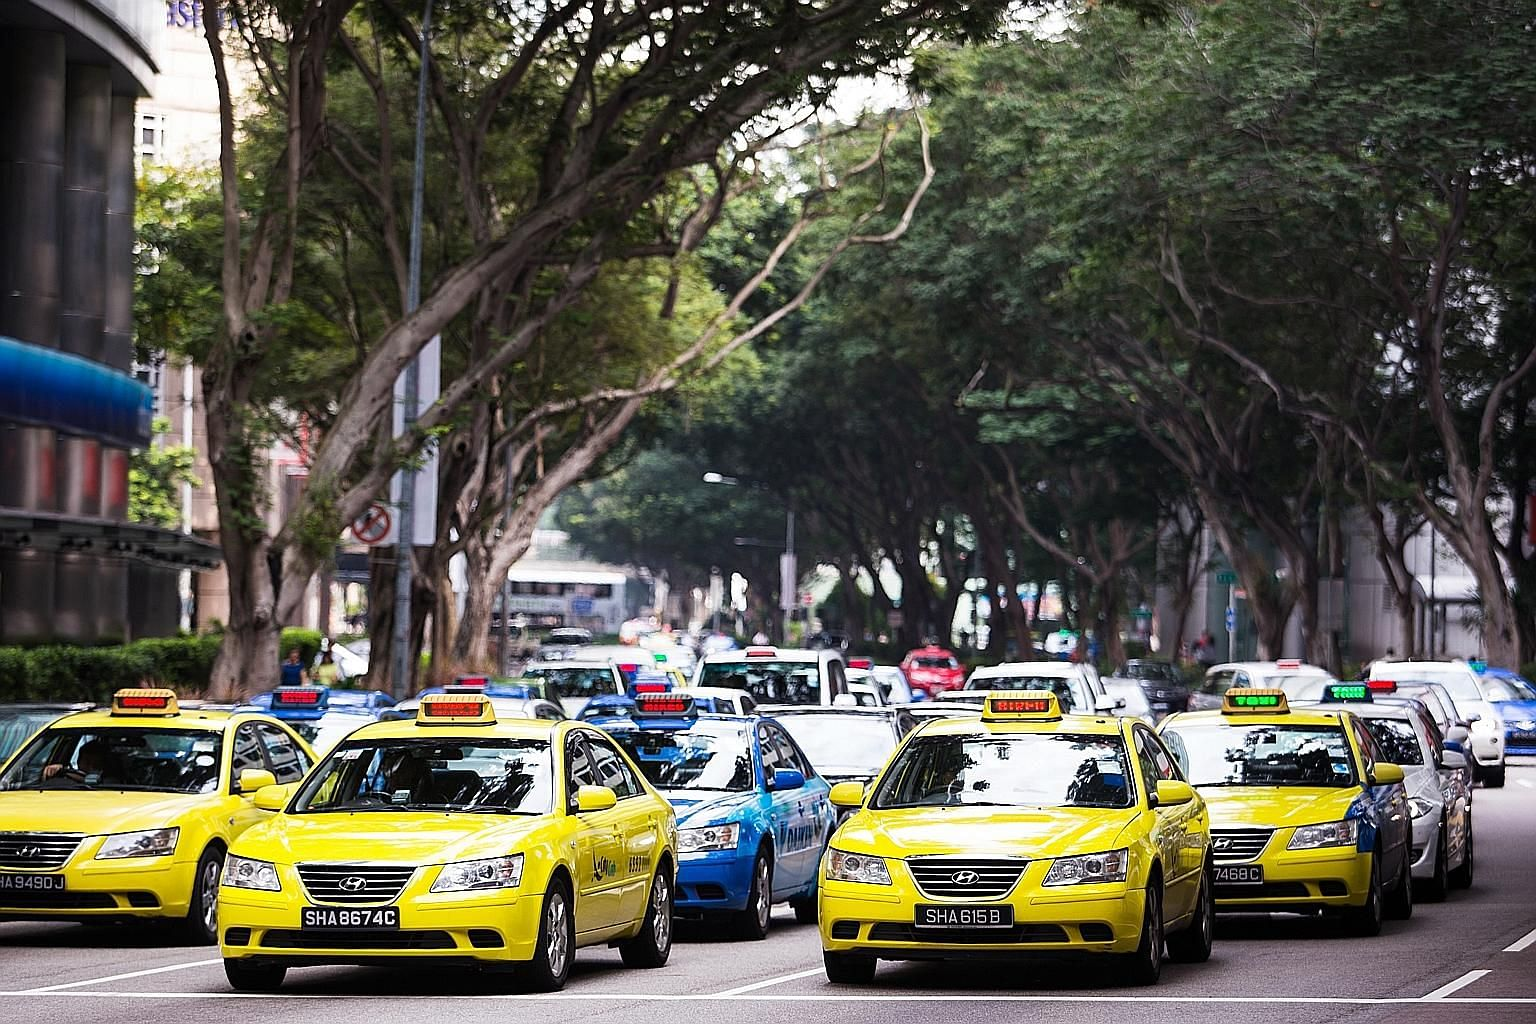 ComfortDelGro, which manages both the yellow CityCab and blue Comfort taxis, saw its revenue slide by 2.4 per cent to $972 million. Group operating expenses shrank by 1.7 per cent to $871.5 million.